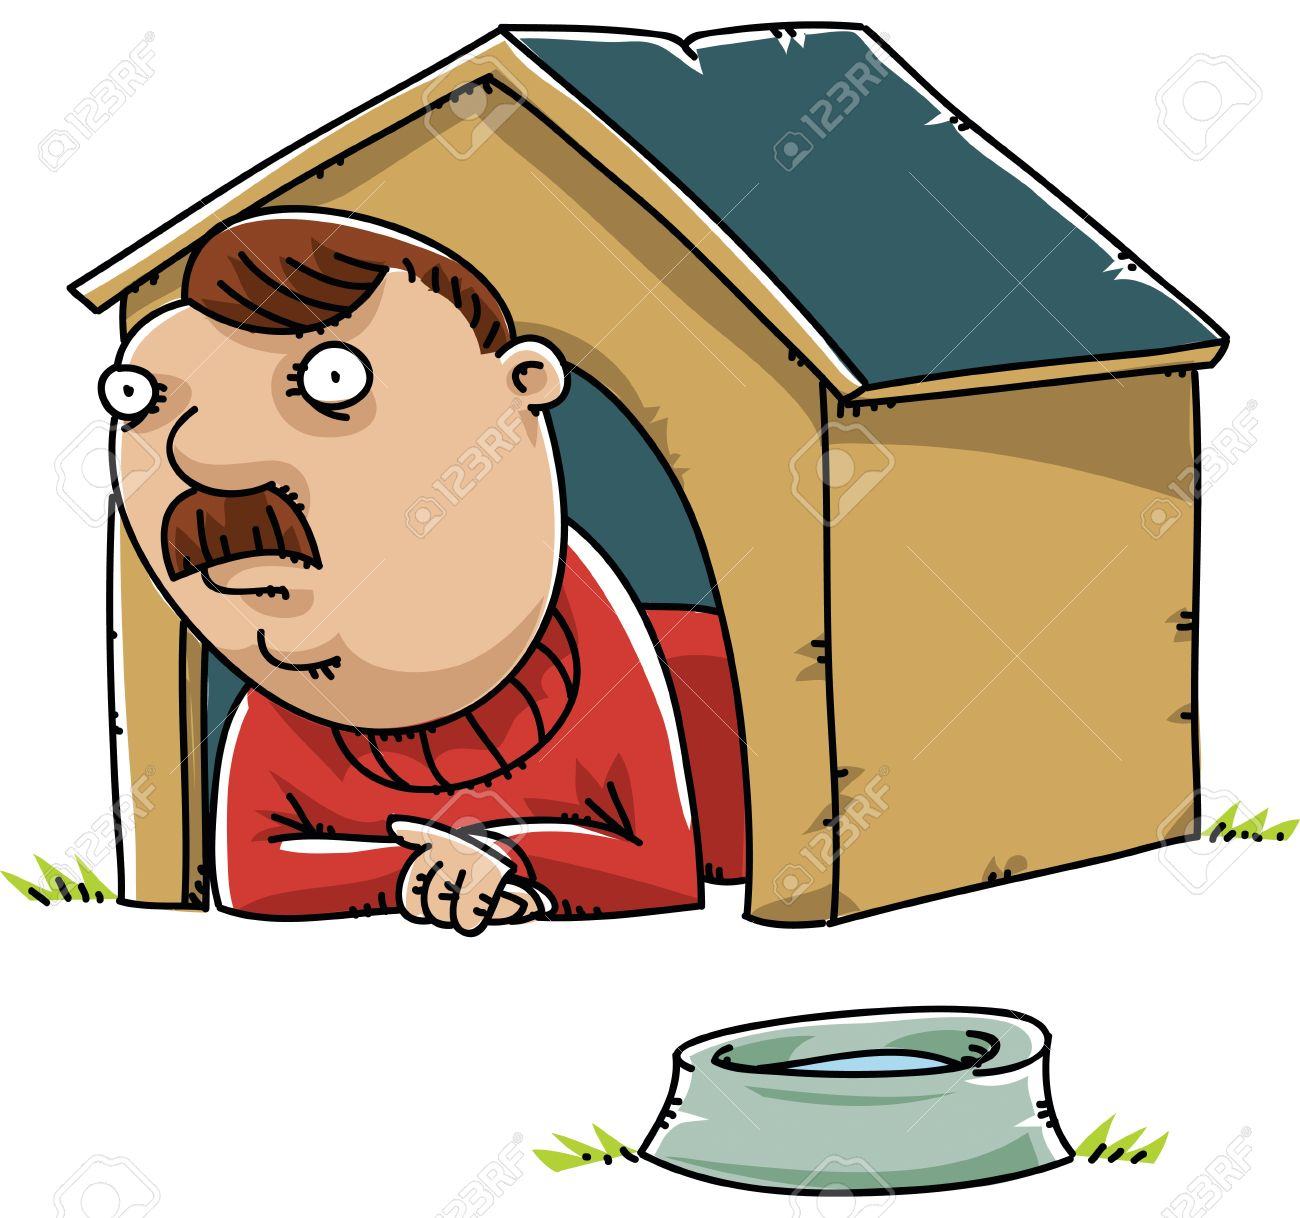 A cartoon man lying inside a doghouse. Stock Vector - 29156689